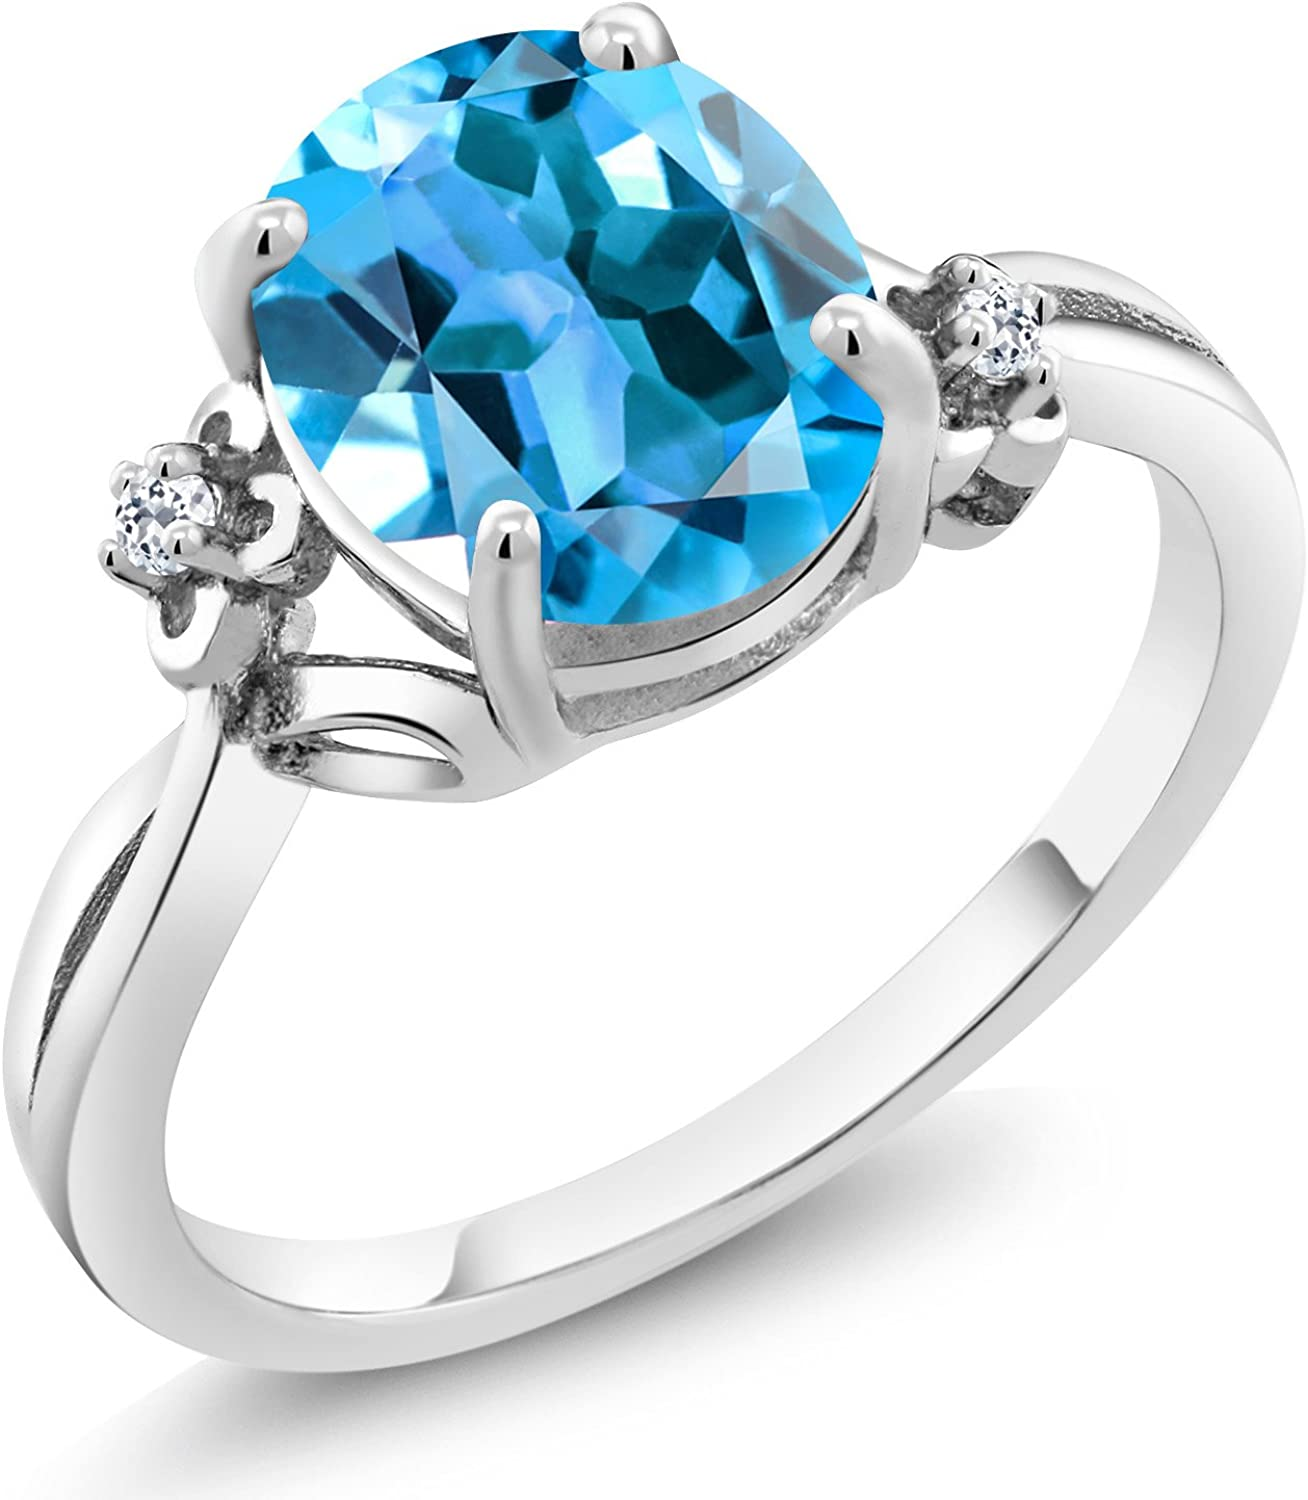 Opening large release sale Gem Stone King 2.74 Ct Oval Blue 925 Ste Swiss White Today's only Topaz